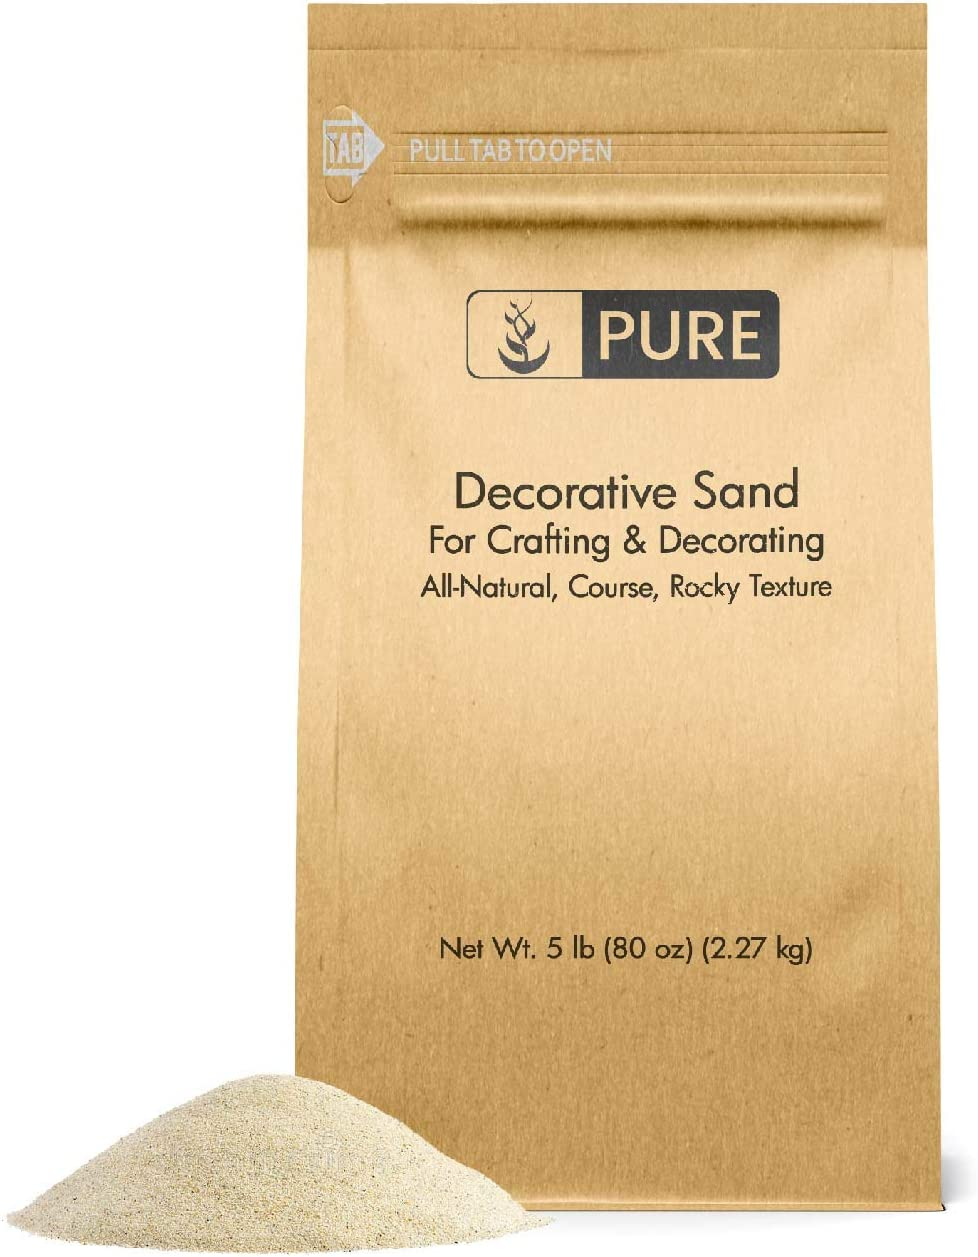 Natural Decorative Sand (5 lbs) by Pure, Real Sand for Use in Crafts, Decor, Vase Filler, and More!